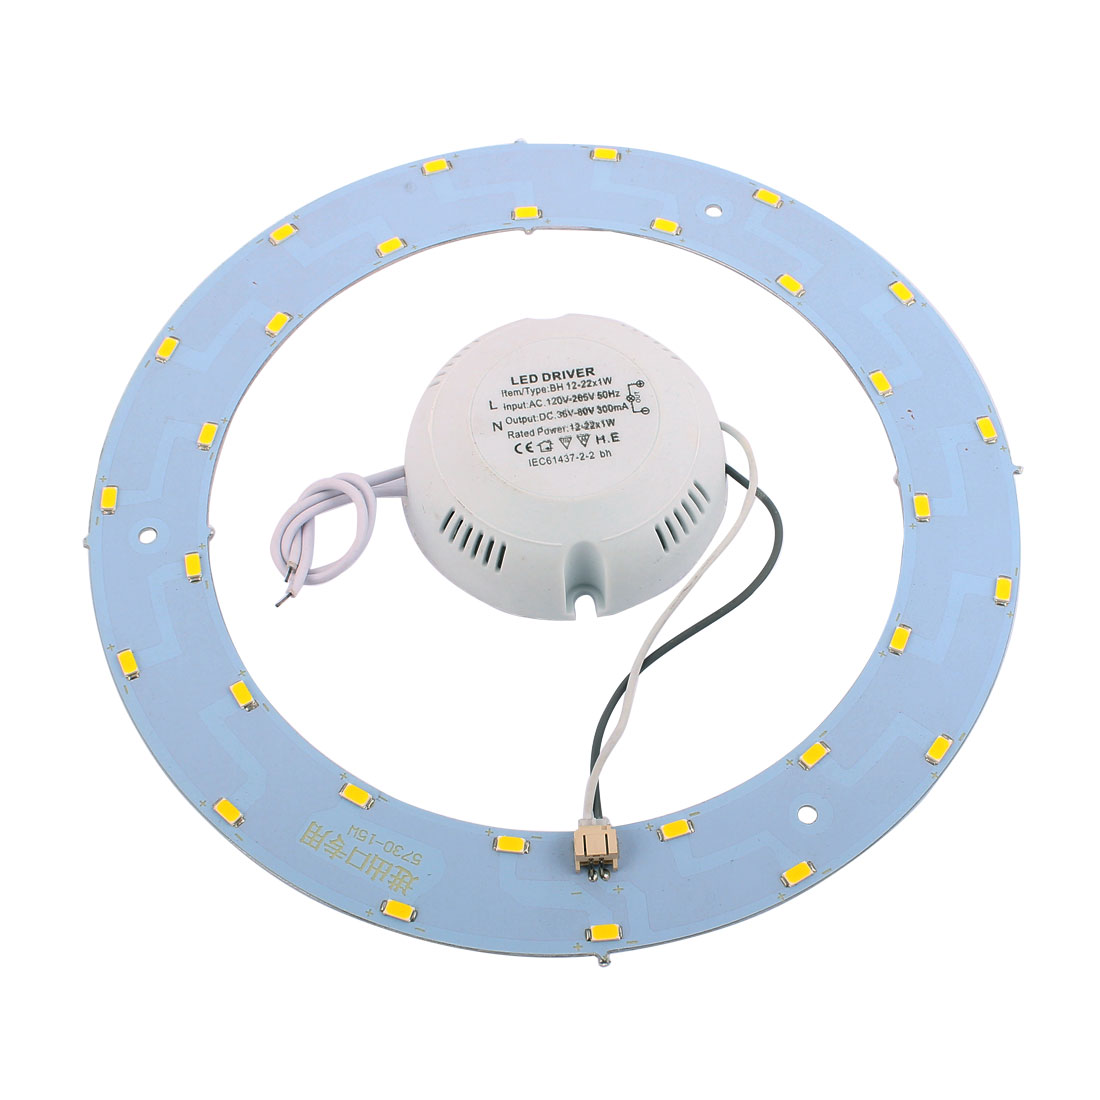 15W 30 LED Light Panel Circle Annular 5730 SMD Saving Plate Practical Ceiling Lamp Warm White